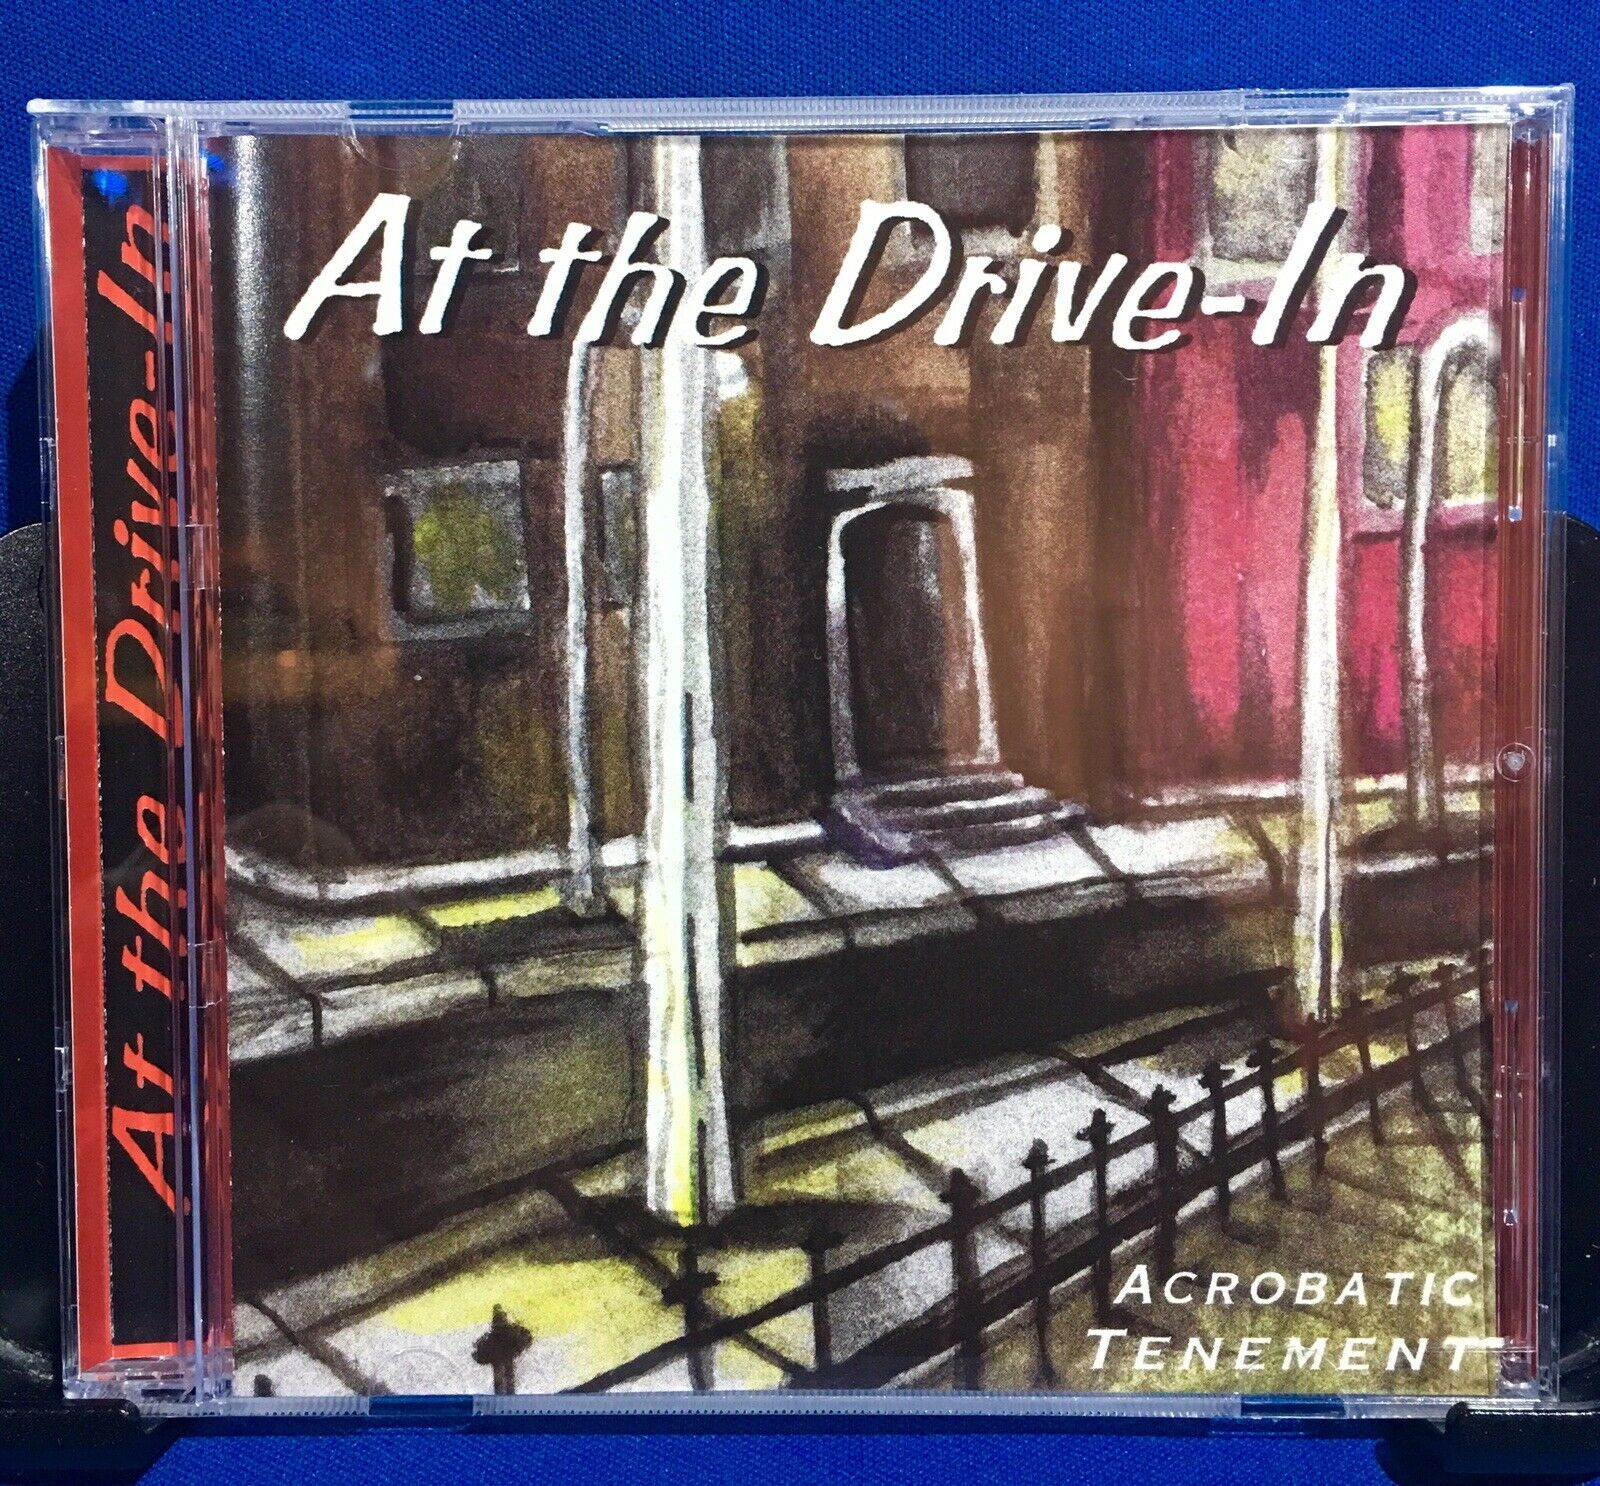 Acrobatic Tenement by At the Drive-In (CD, Mar-1998, Restart)